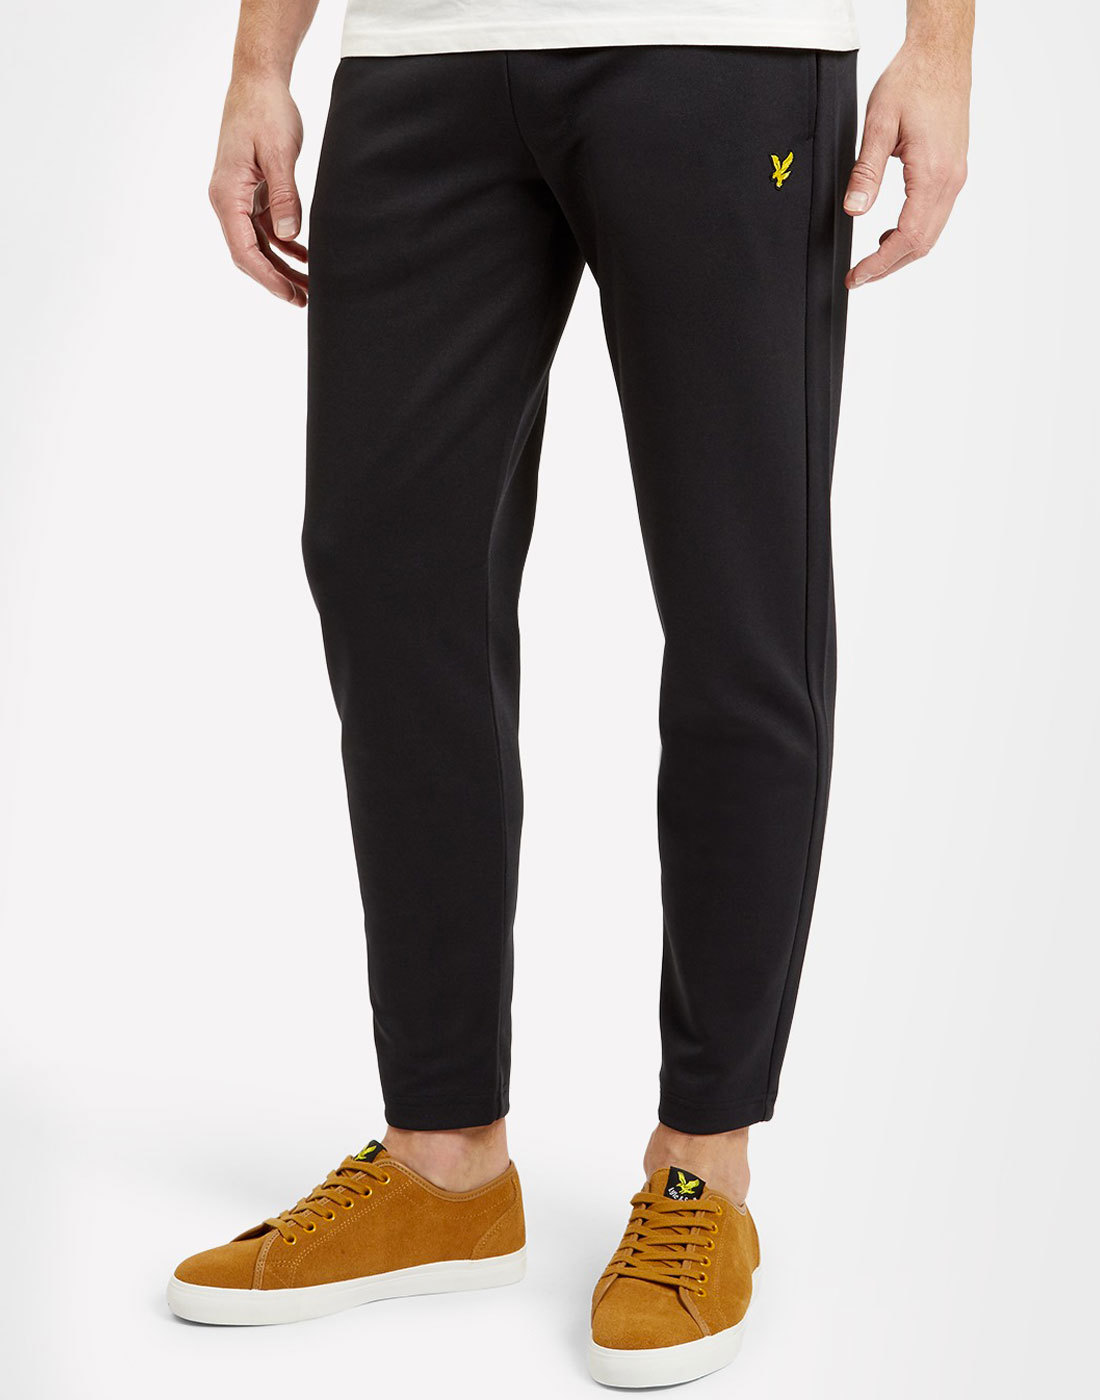 LYLE & SCOTT Retro Tricot Jogger Track Bottoms (B)